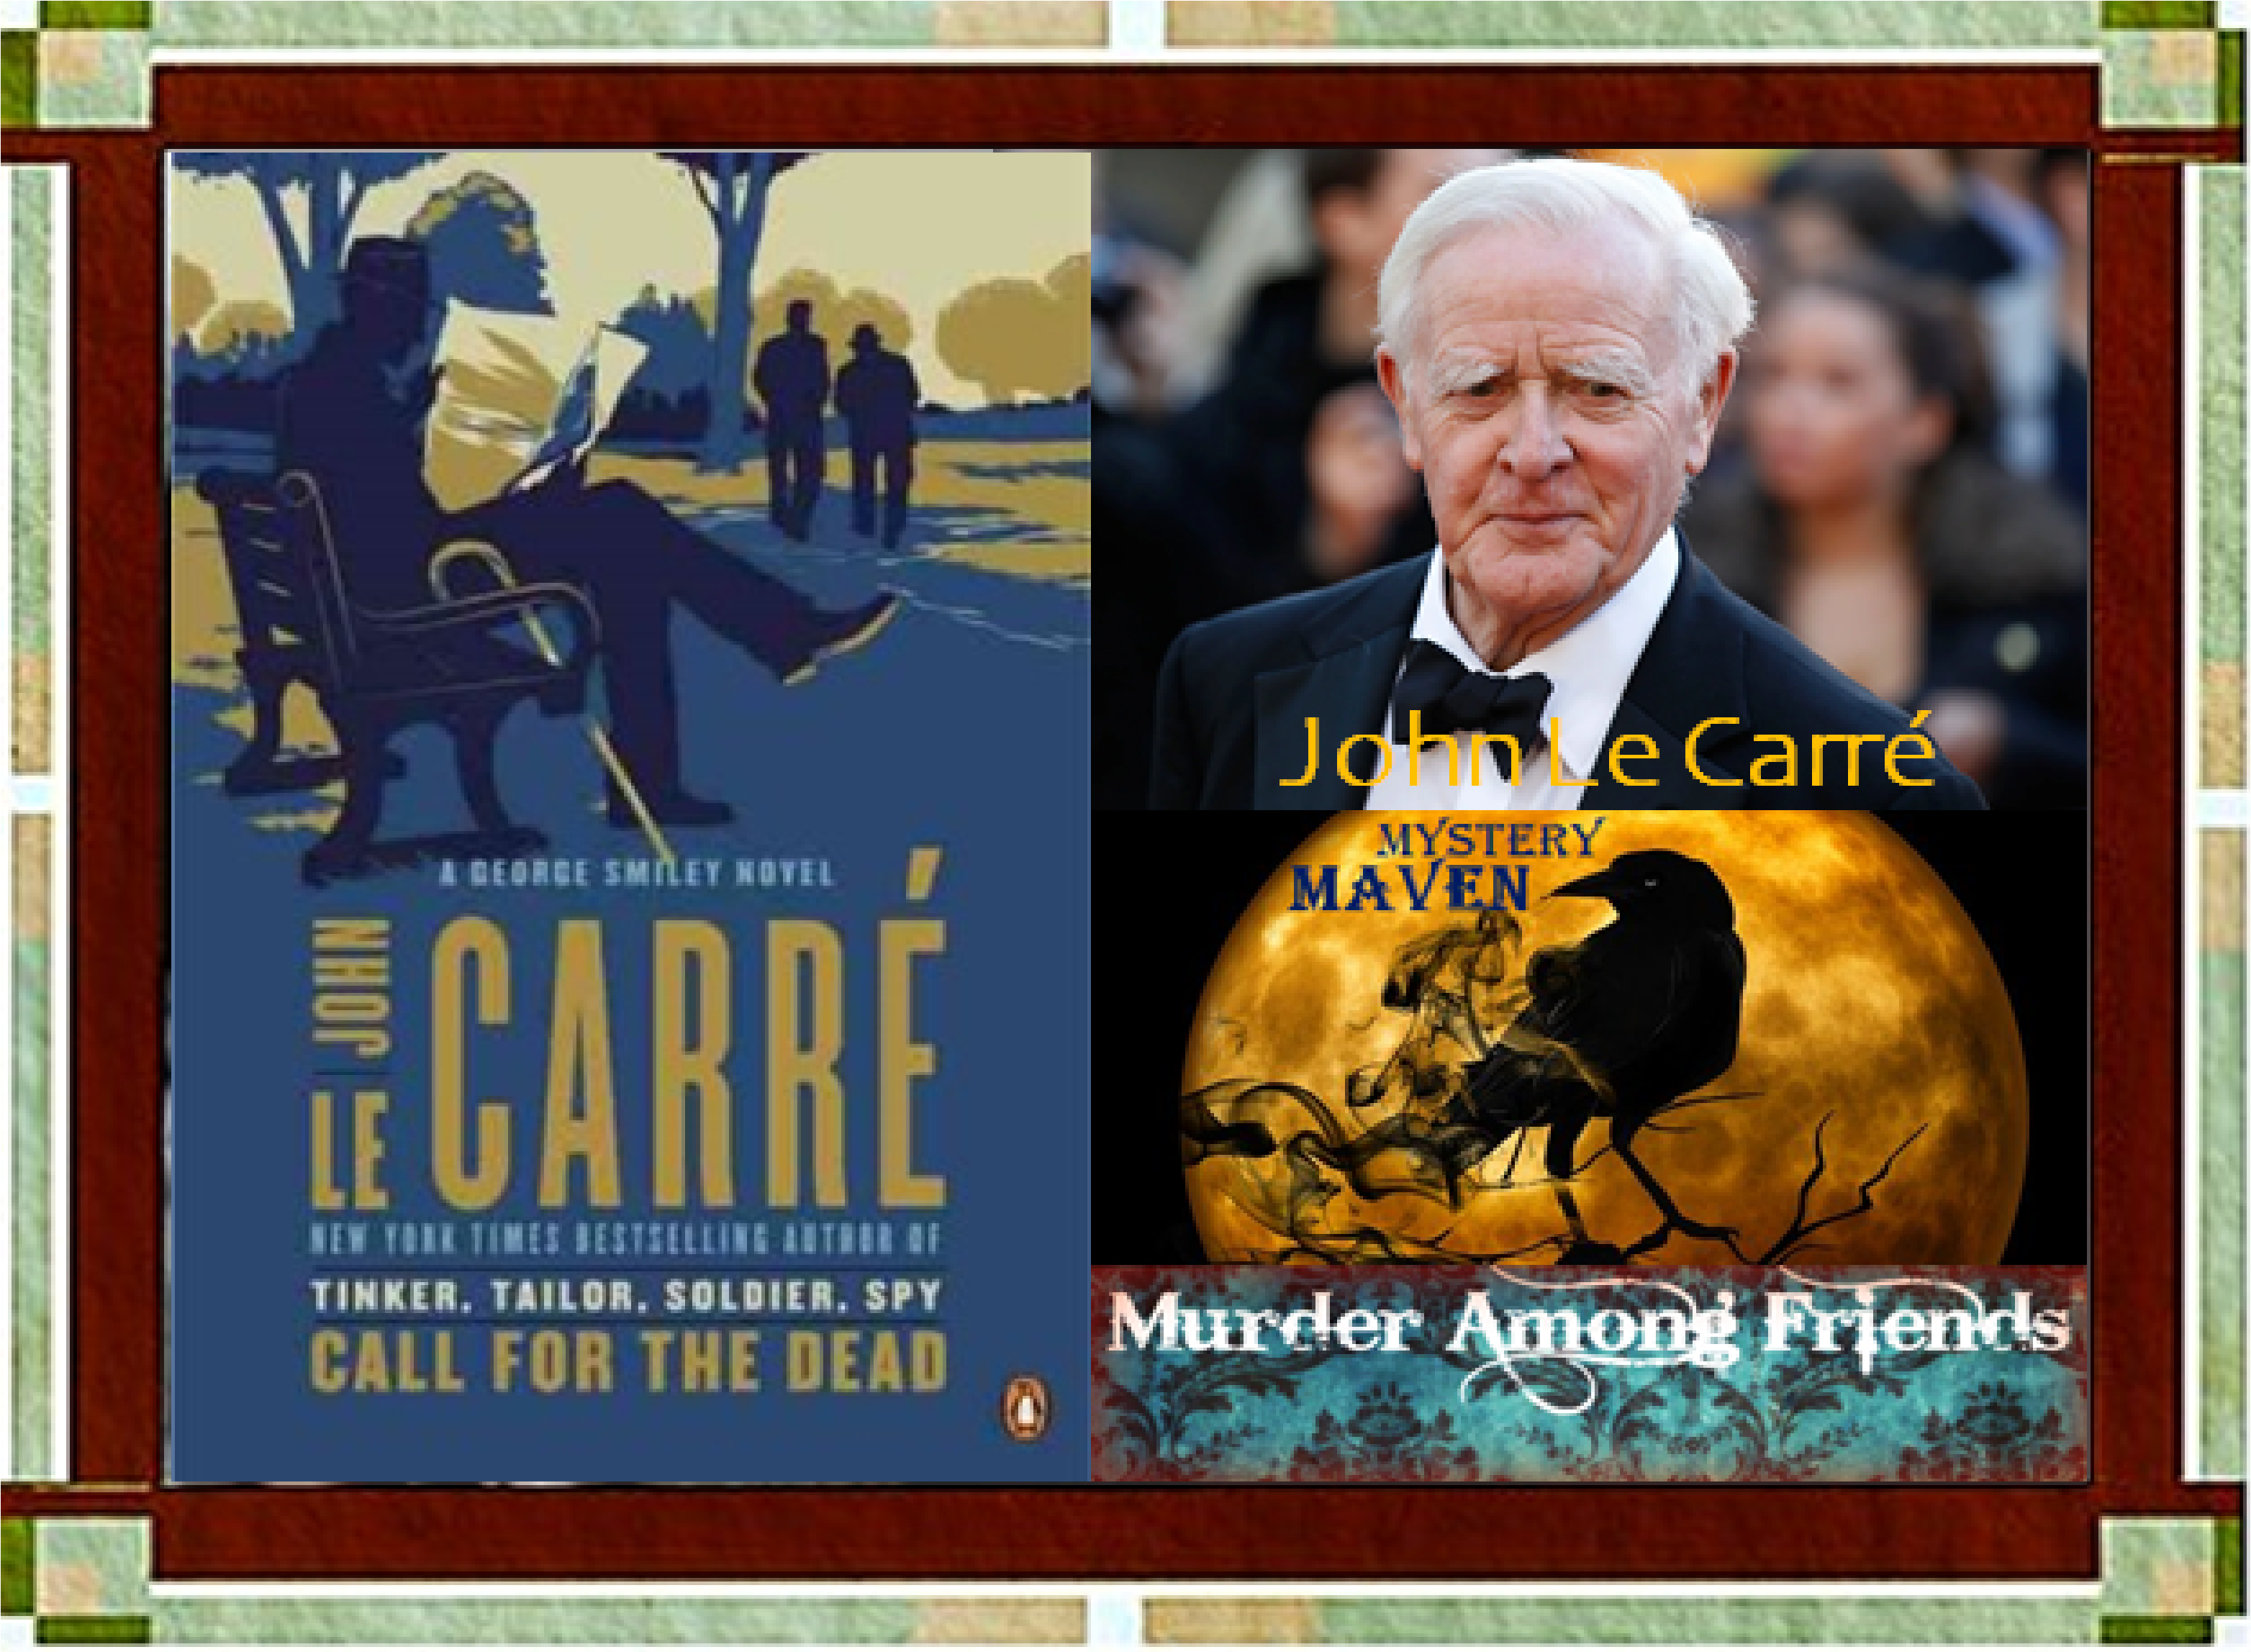 Our 2021 Mavin  of Mystery John Le Carre With Call for Justice Cover